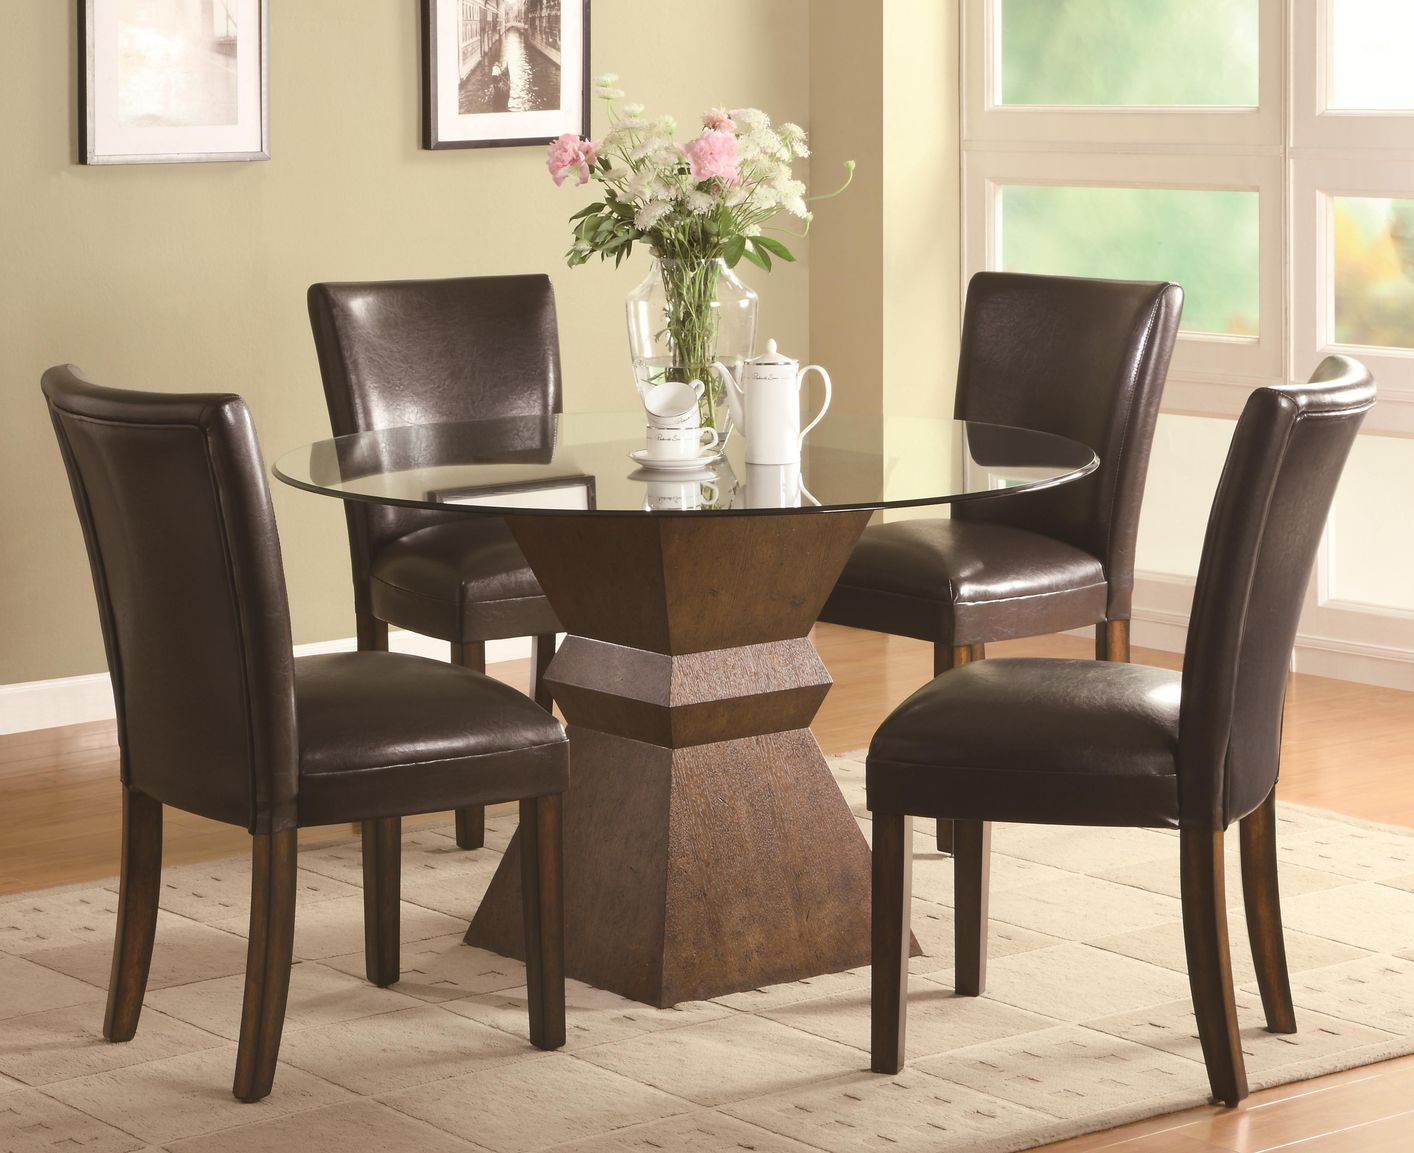 coaster nessa glass kitchen table Nessa Deep Brown Wood And Glass Dining Table Set